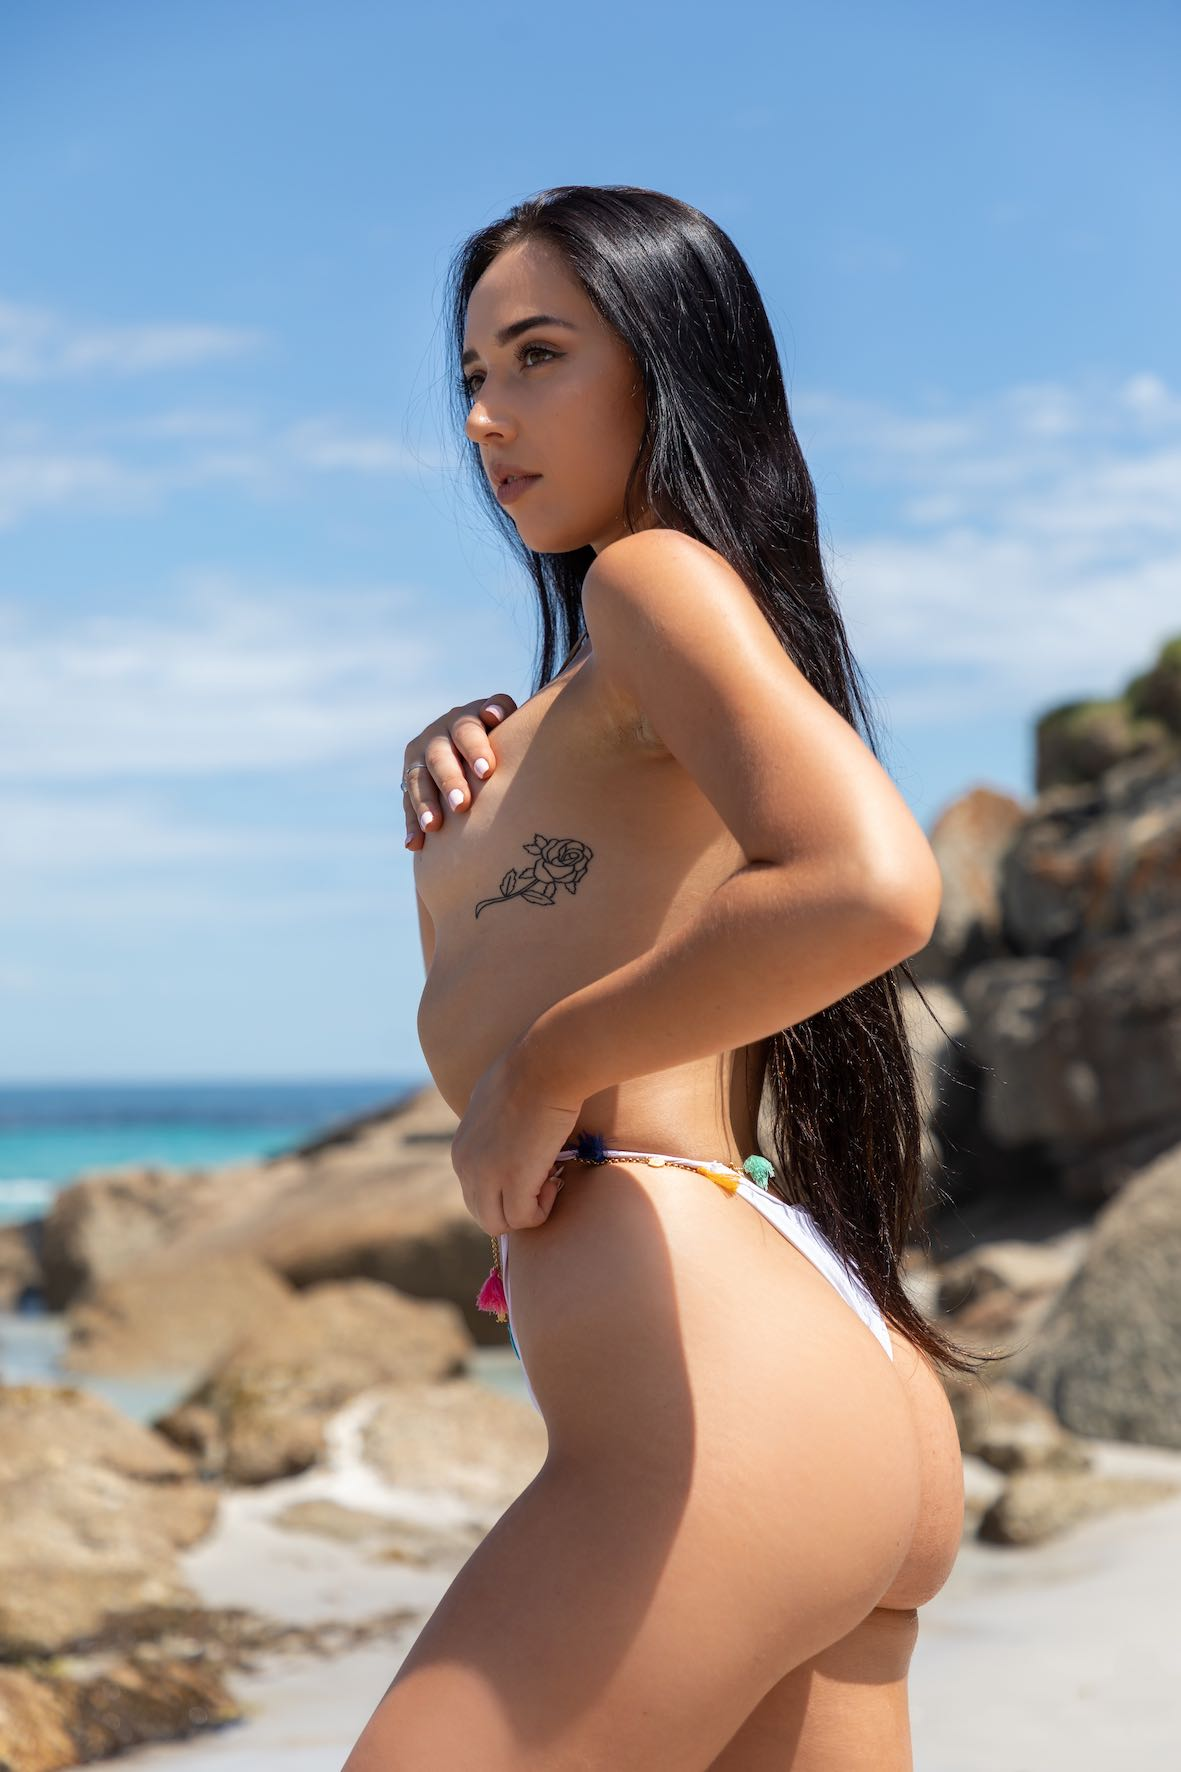 Meet Nicole Holland in our SA Girls feature